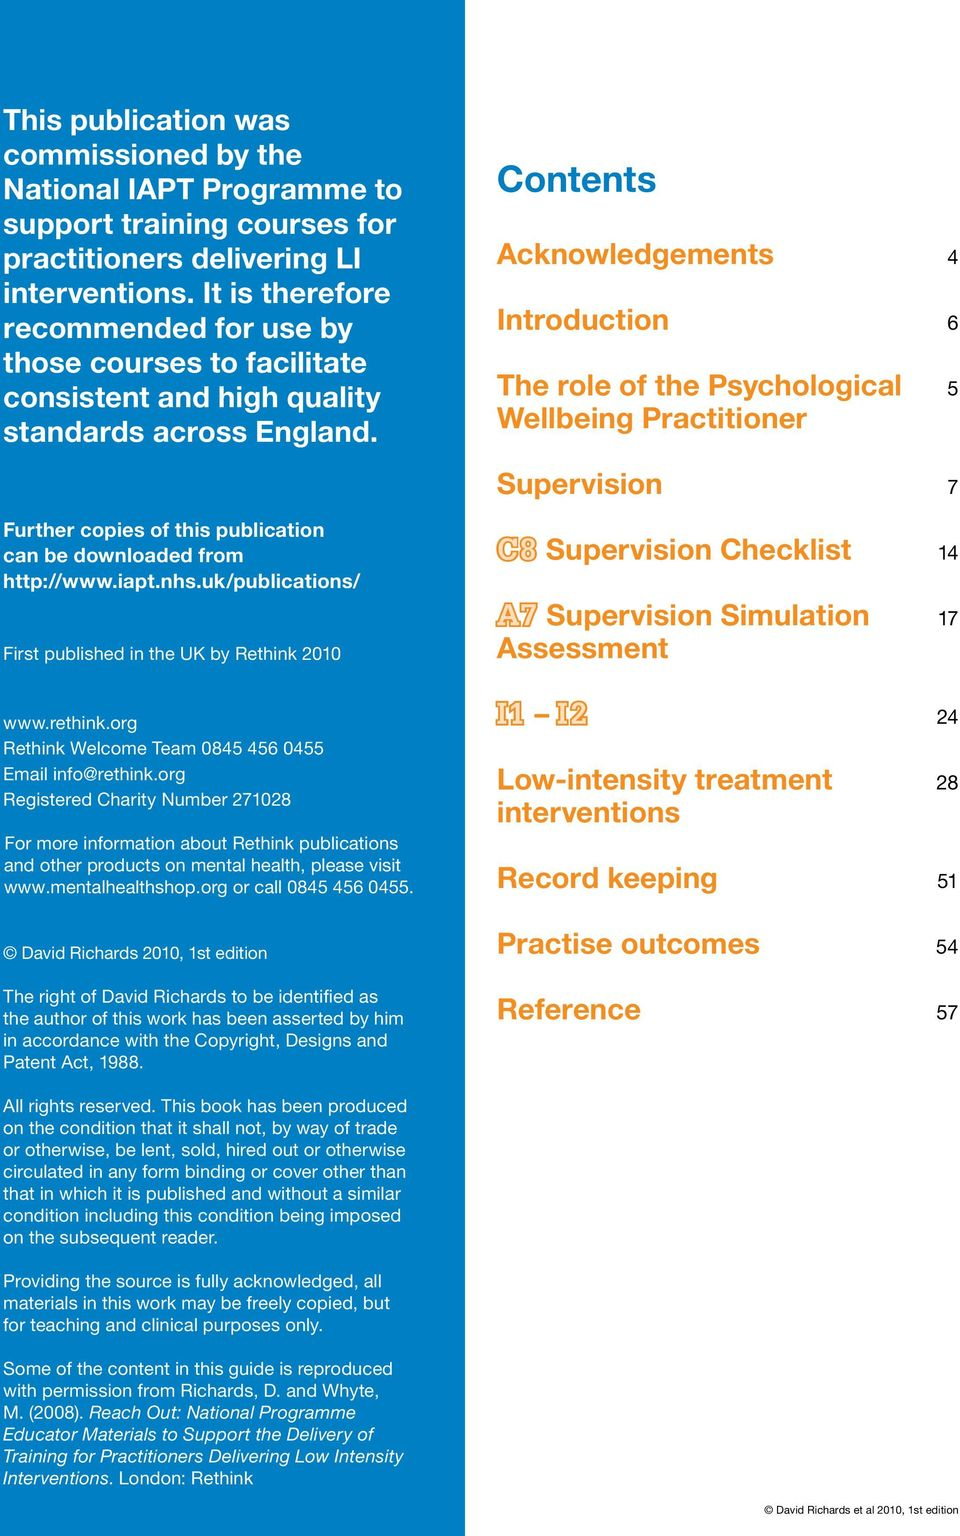 Contents Acknowledgements 4 Introduction 6 The role of the Psychological 5 Wellbeing Practitioner Supervision 7 Further copies of this publication can be downloaded from http://www.iapt.nhs.